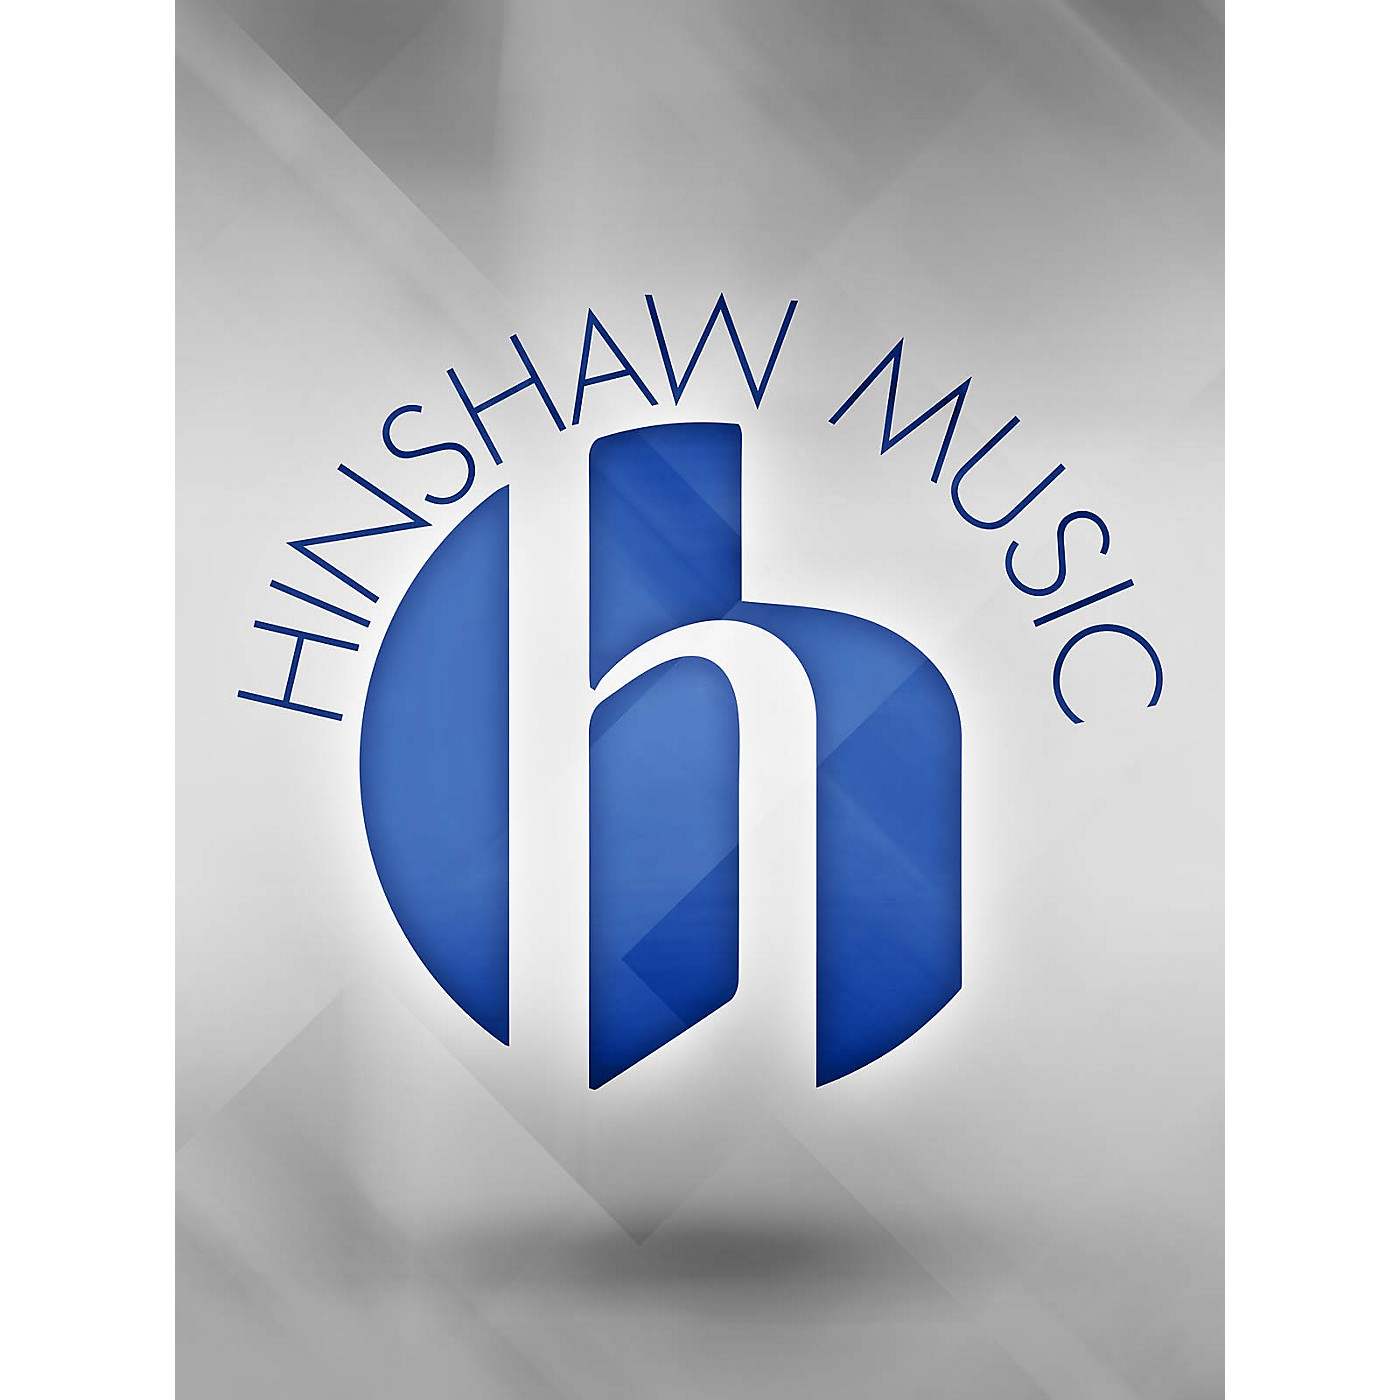 Hinshaw Music Music to Hear (A Choral Suite for Mixed Voices) SATB Composed by George Shearing thumbnail